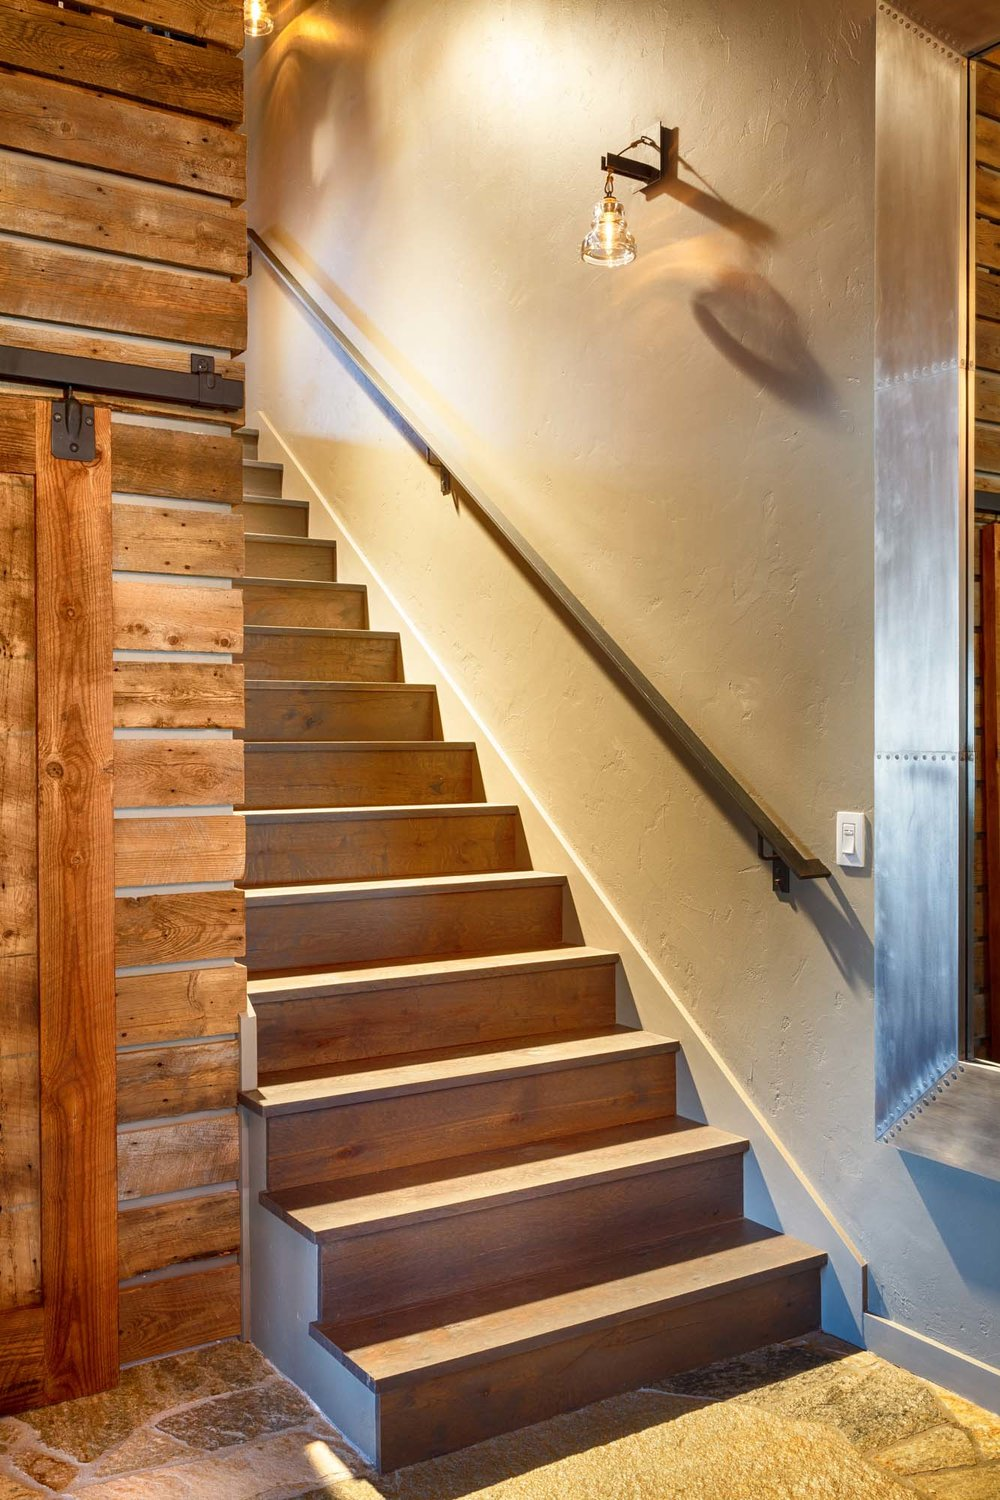 entry-stairs_7544.jpg